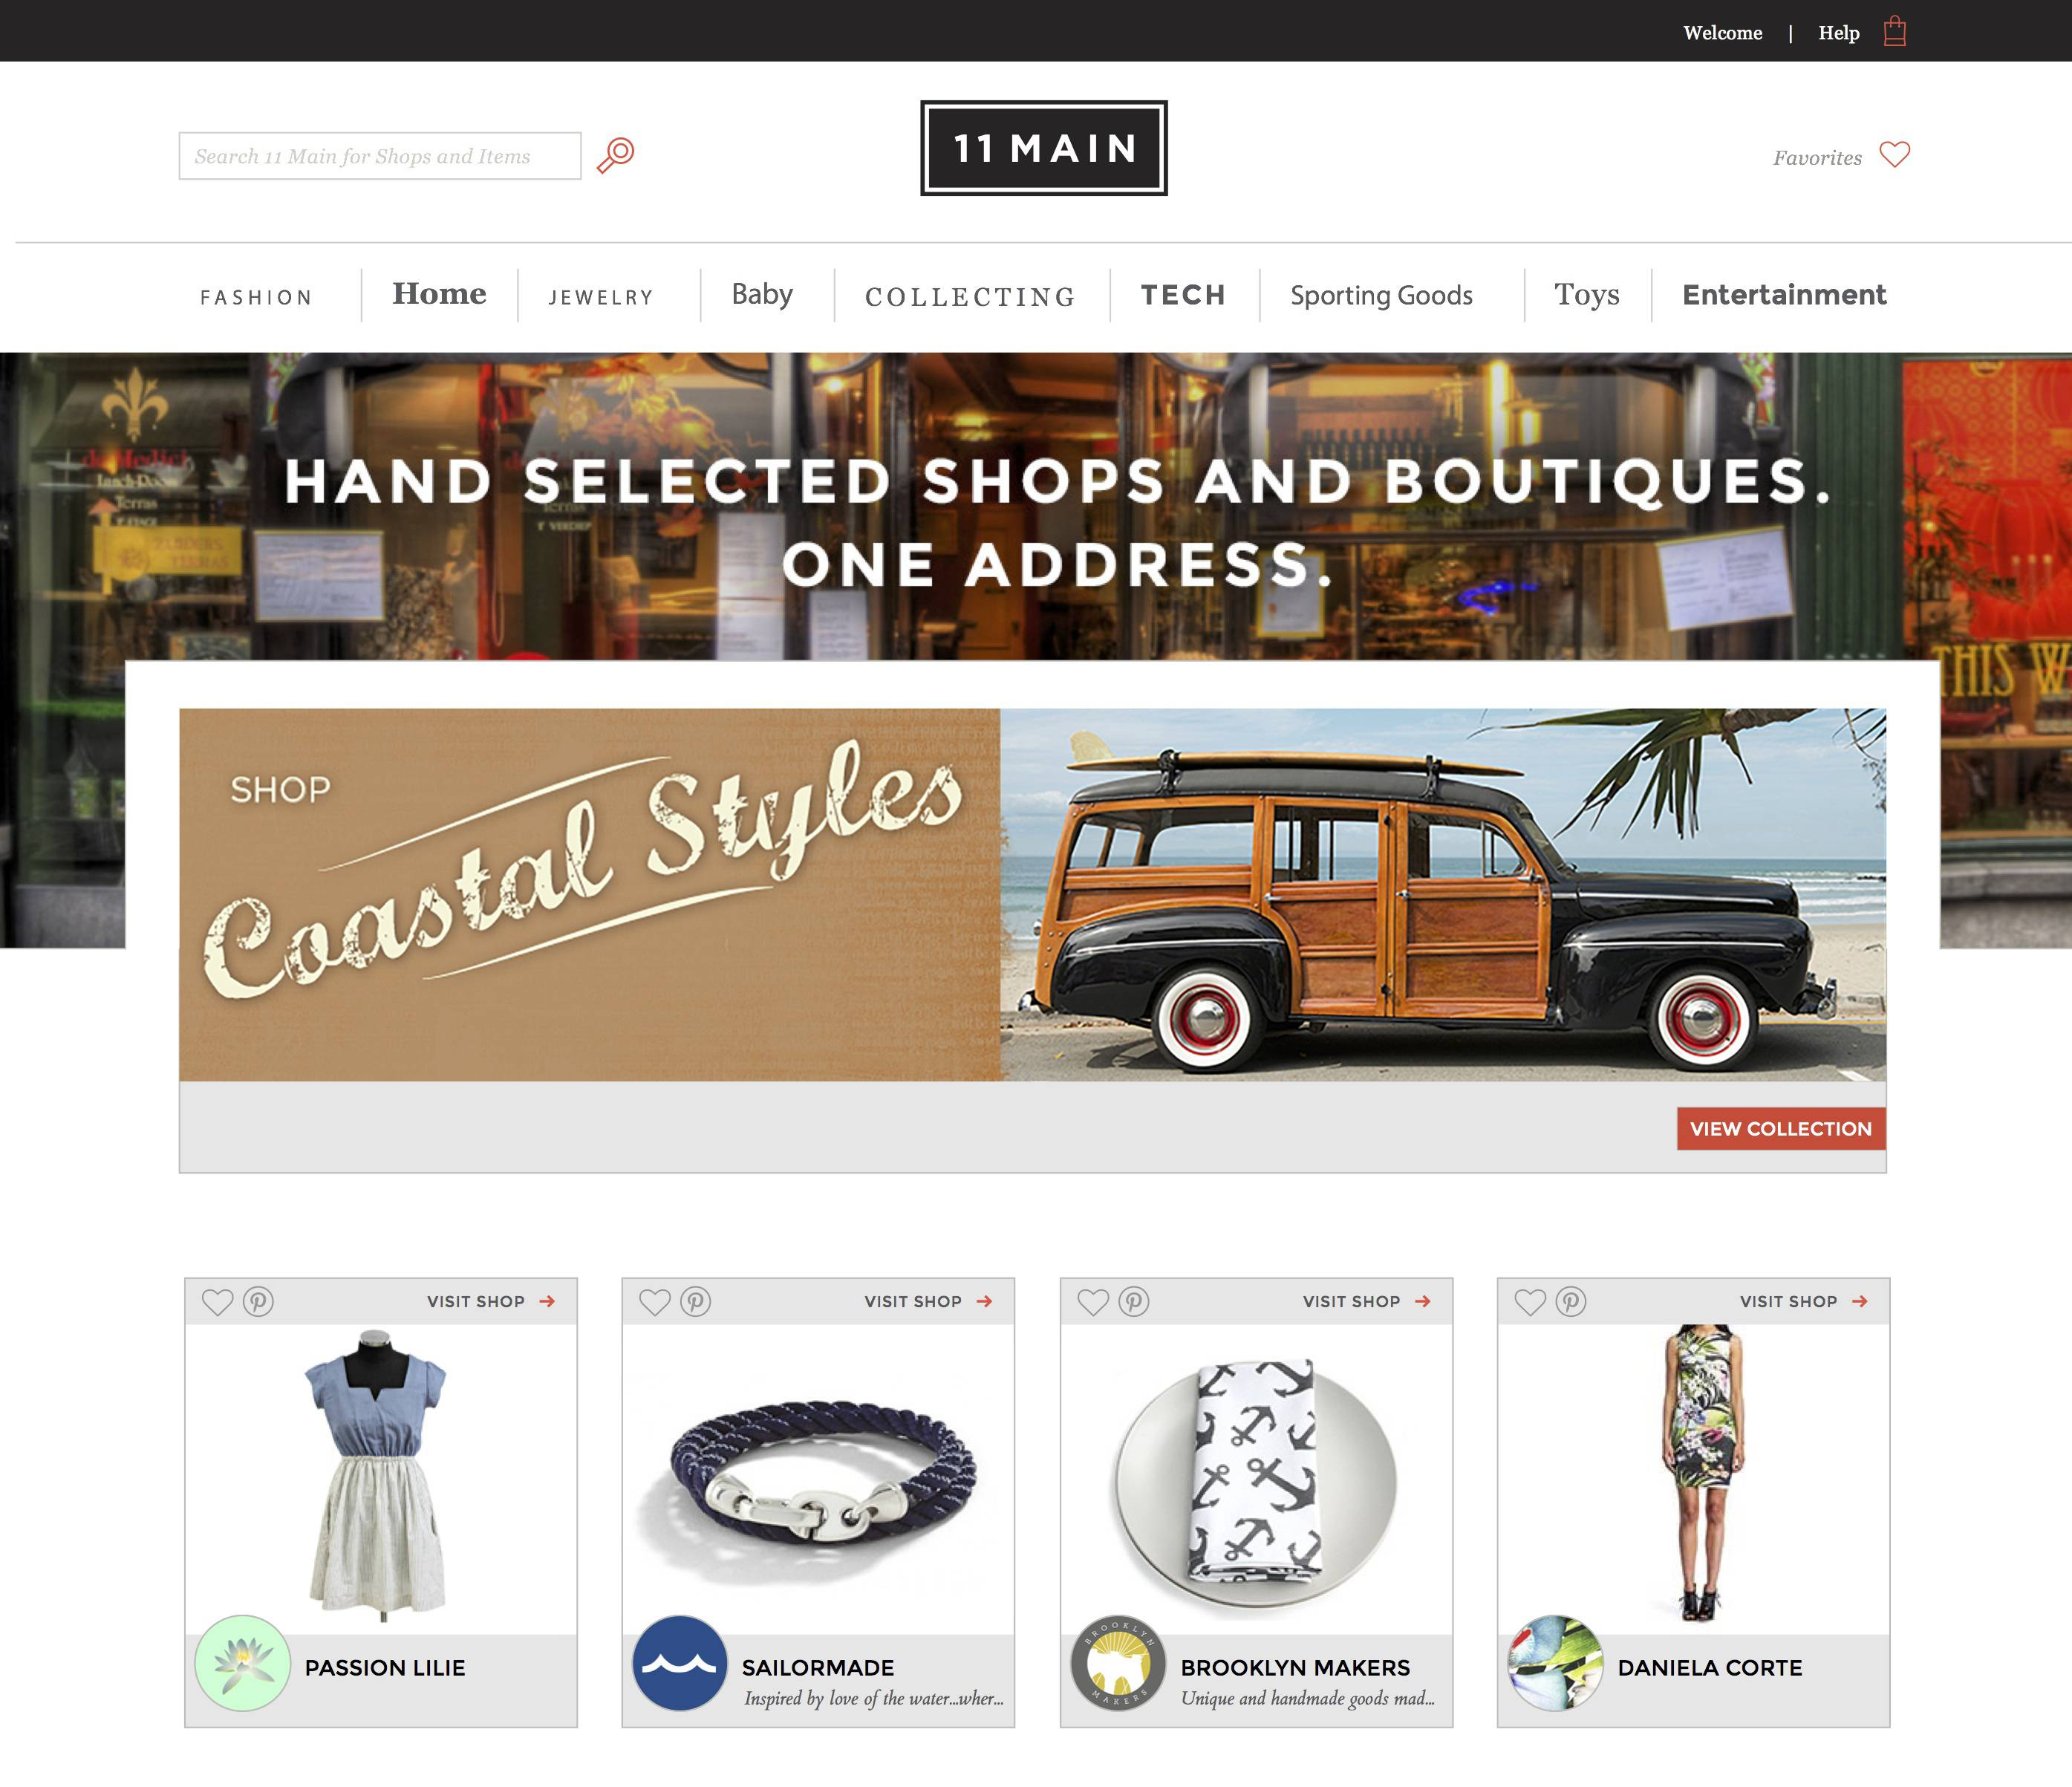 This screen shot shows 11 Main's homepage. The new e-commerce site is hoping to bring Main Street to the Web with an invite-only online marketplace that focuses on small-business retailers.